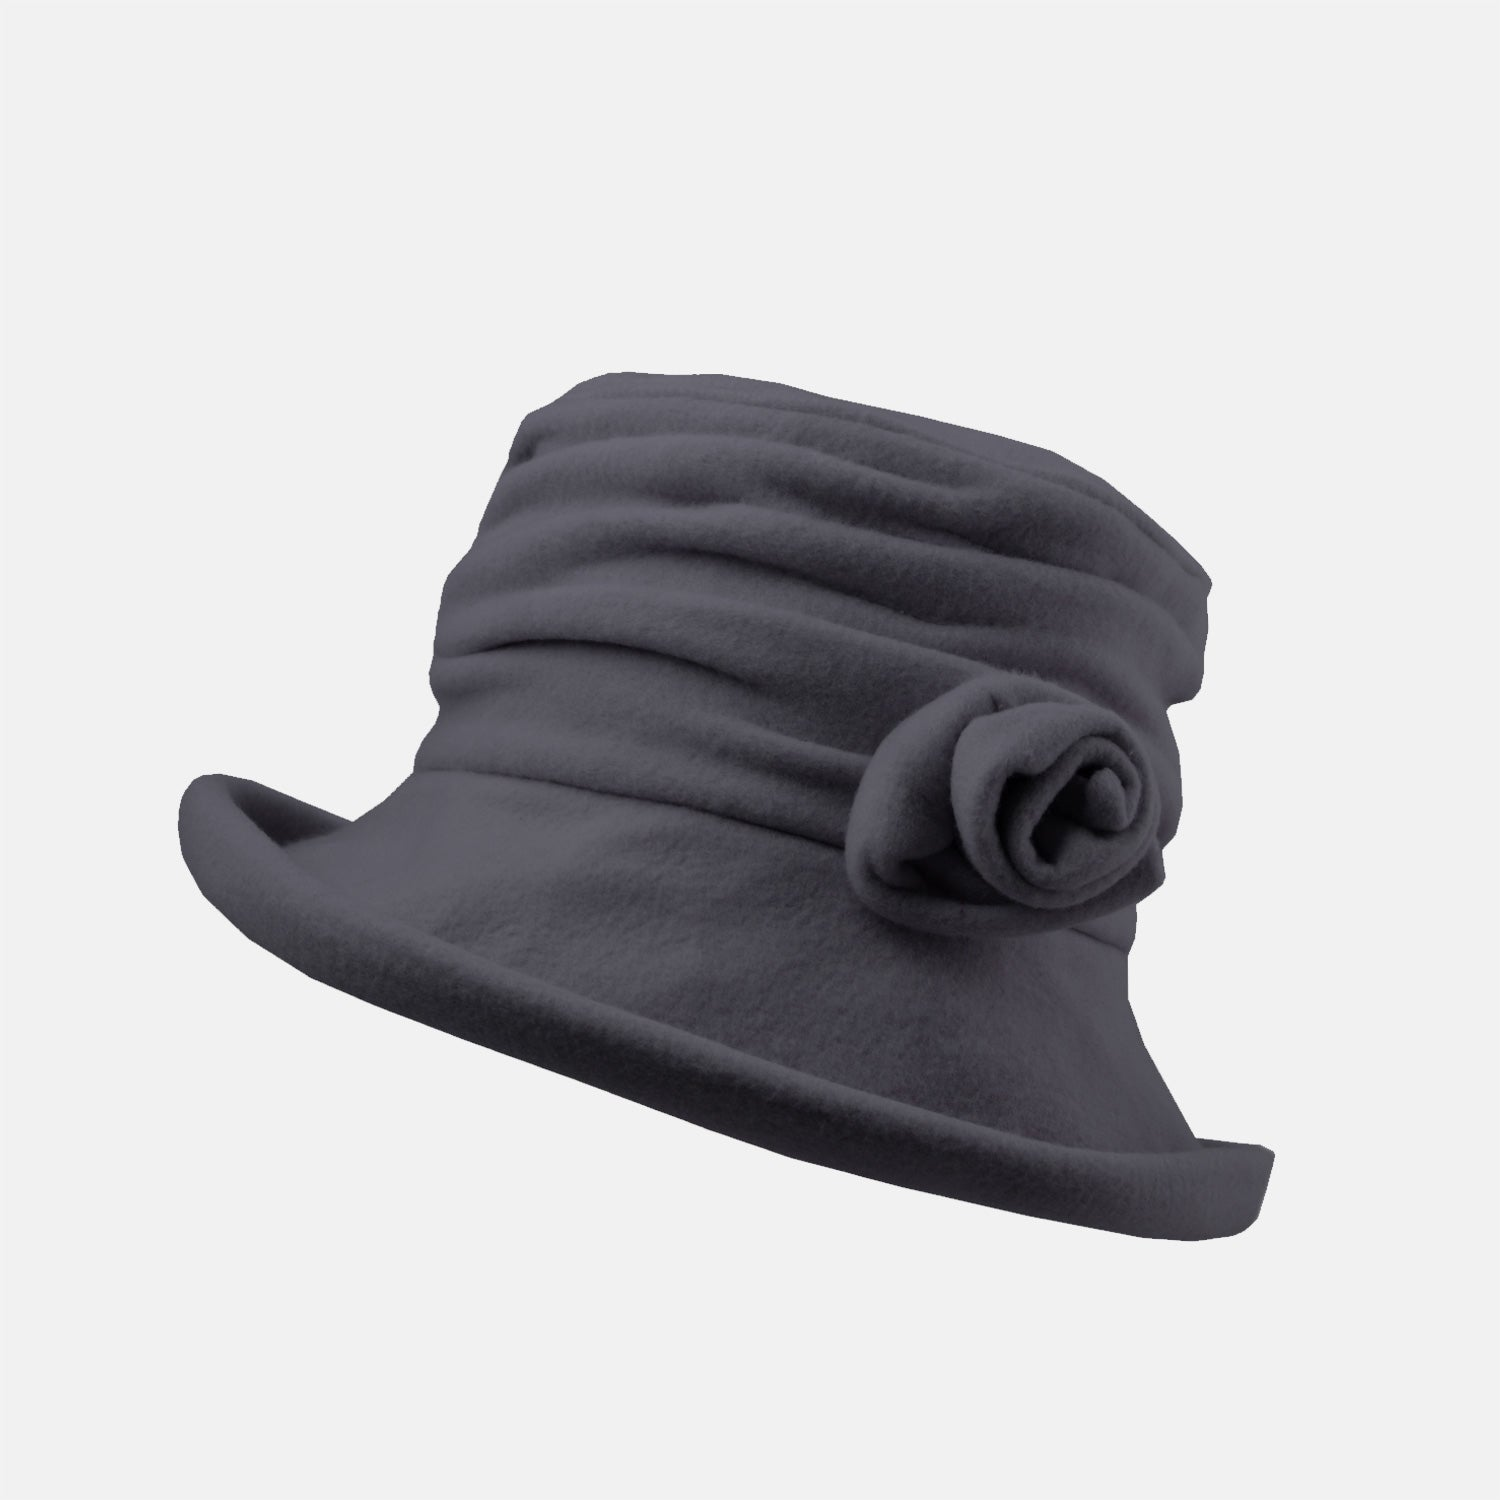 1bc89fb2c09 PT17 - Cosy Fleece Hat with Detachable Flower – Proppa Toppa Hats